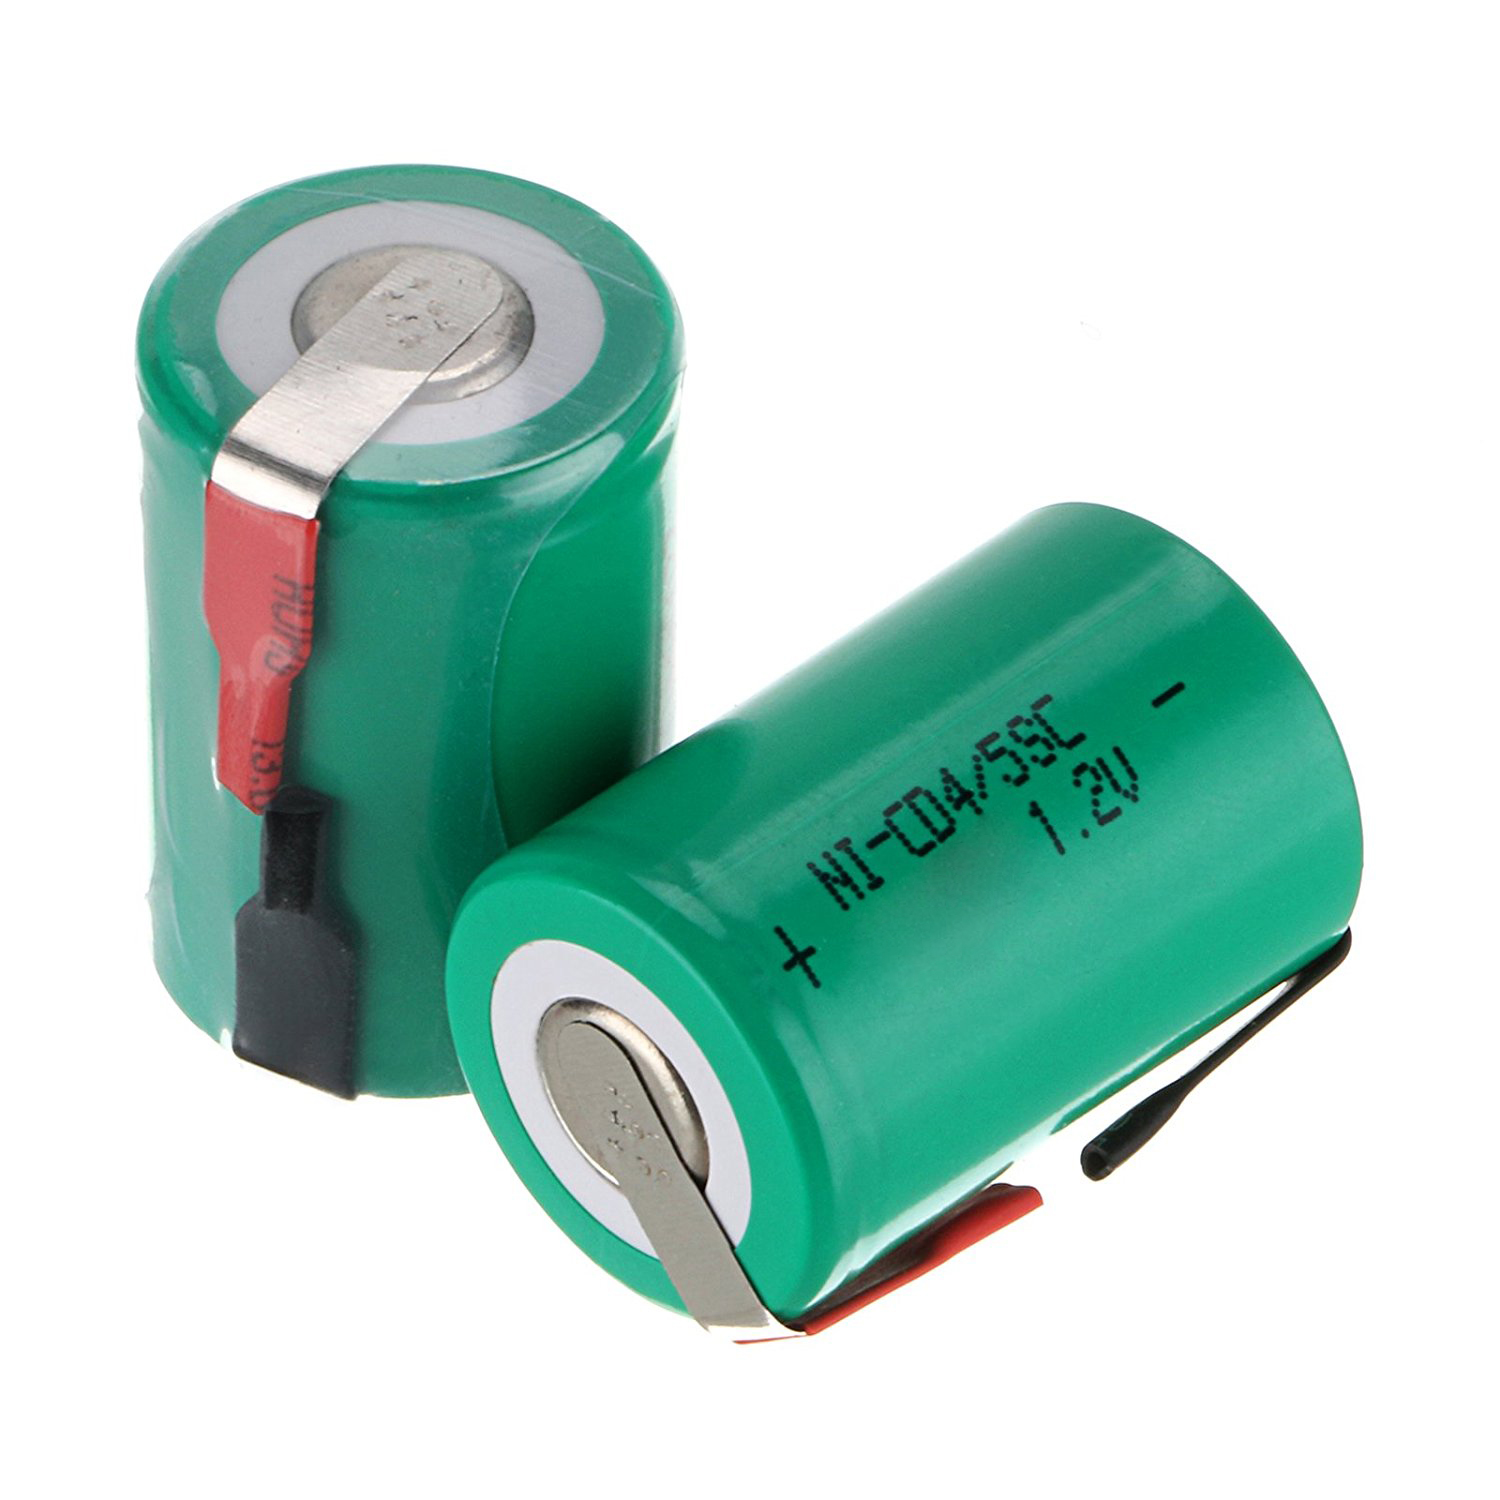 33.6*22mm Sub C 4/5SC Battery 1.2V 1600mAh NI-CD Batteries With PCB For Electronic Tools Rechargeable Battery